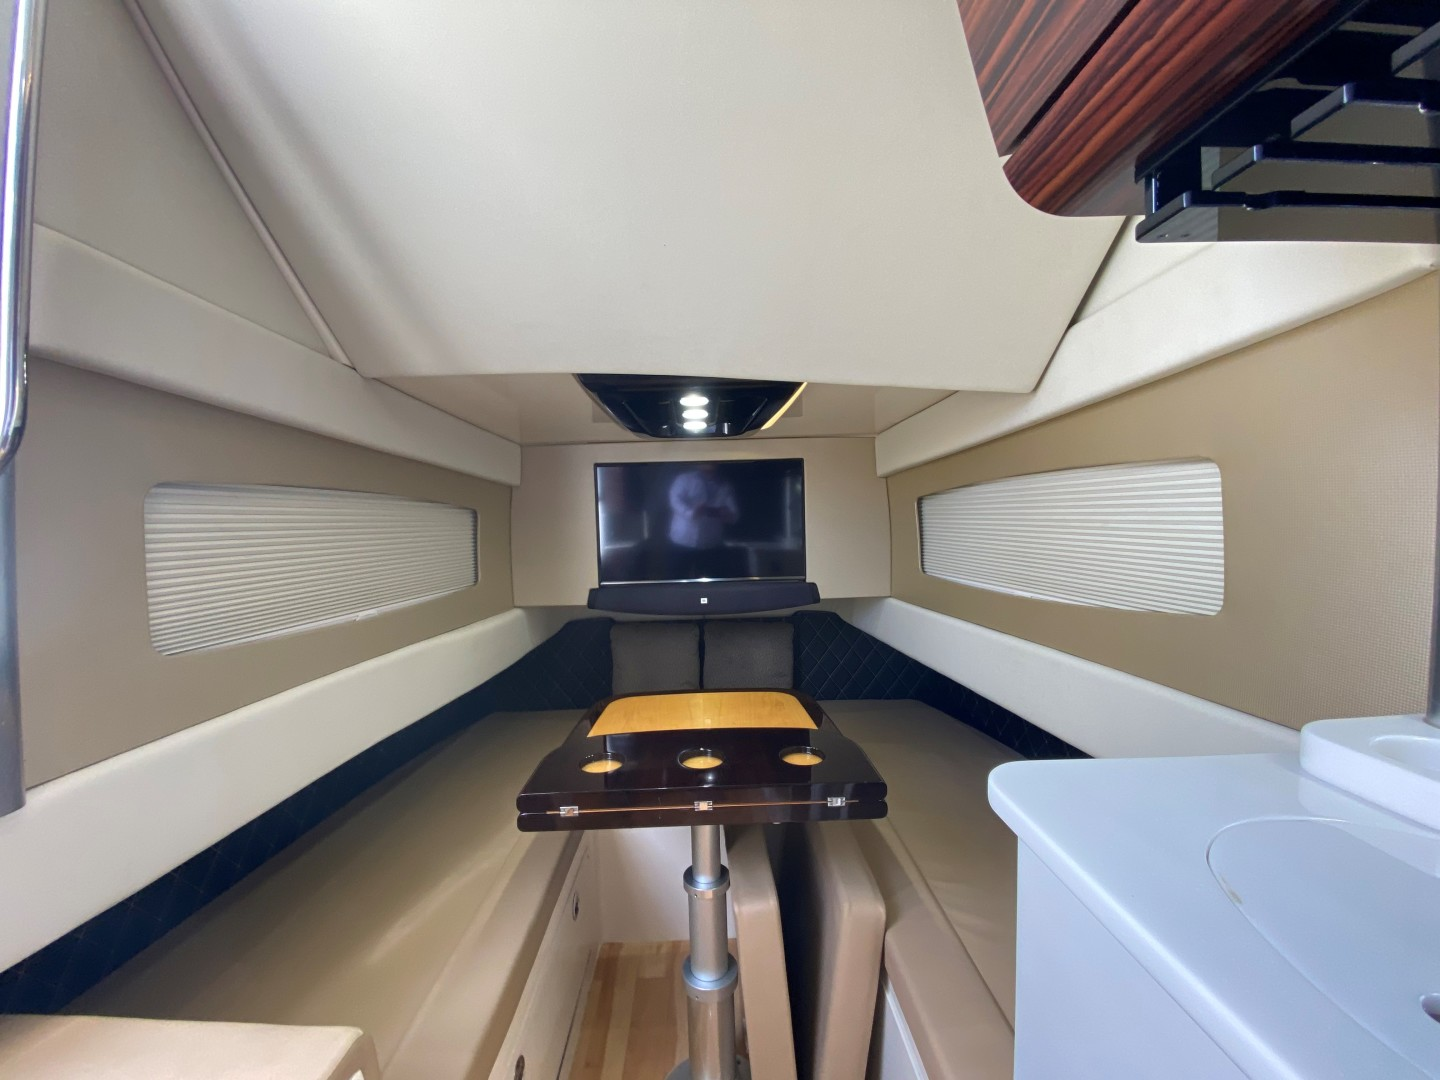 Scout-420 LXF 2016-Scout 420 LXF Delray Beach-Florida-United States-1593771 | Thumbnail